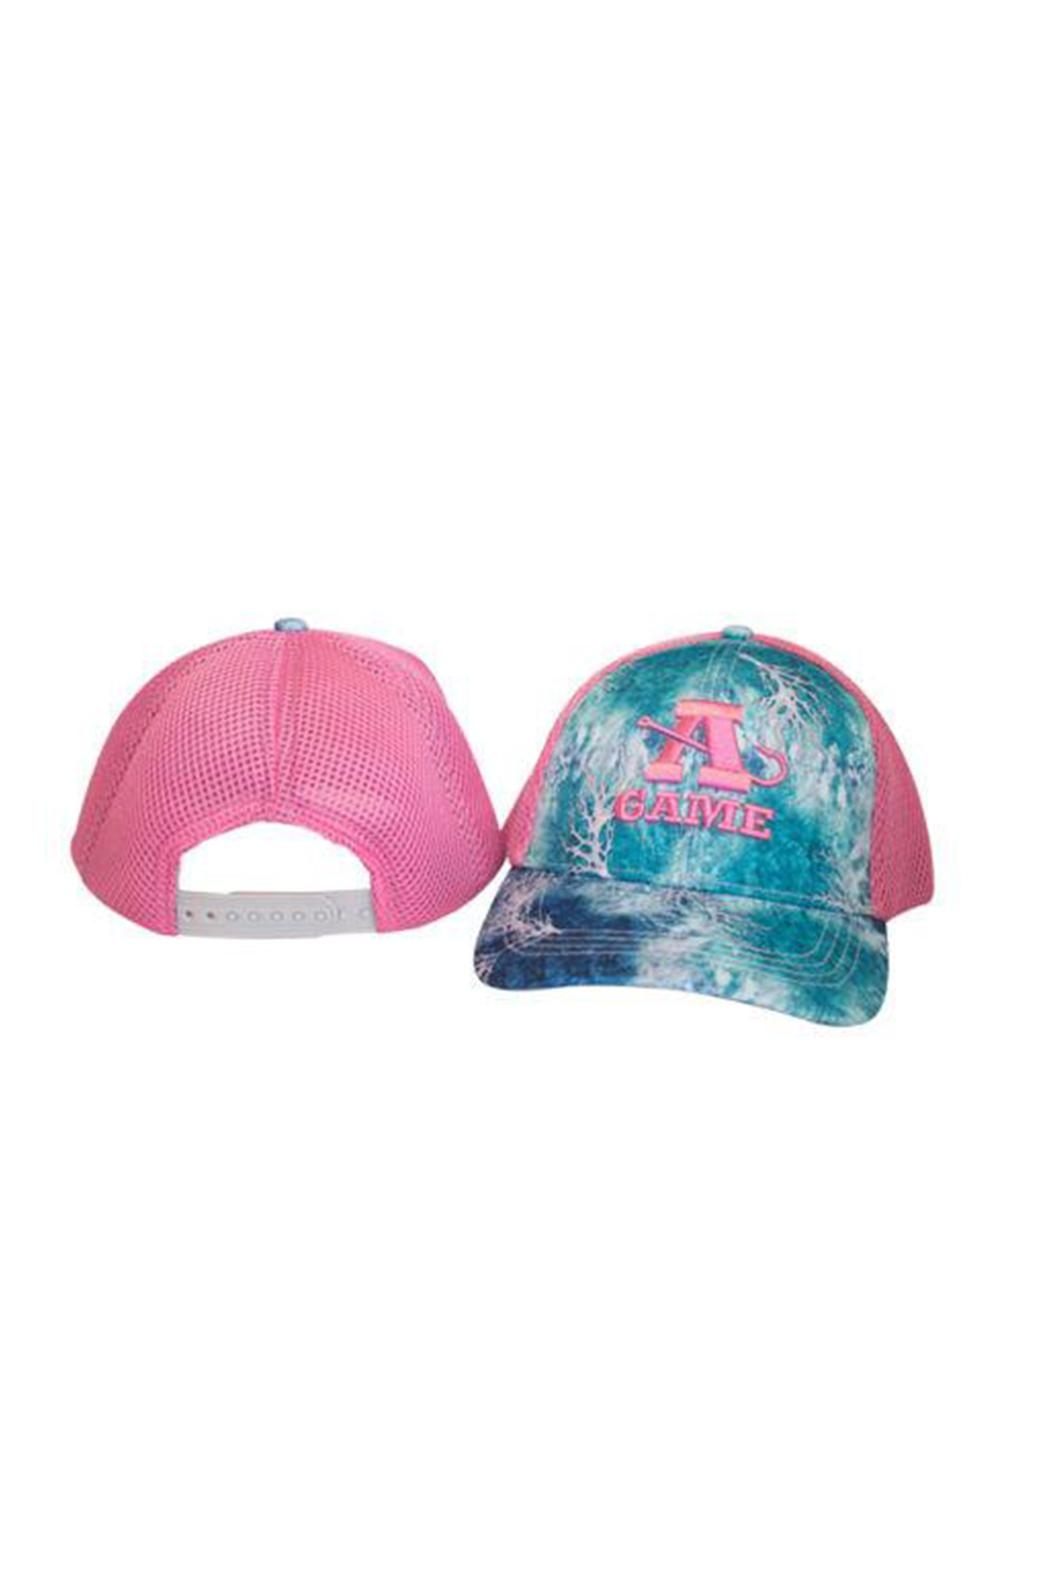 A-Game Camo A-Game Pink Hat - Main Image